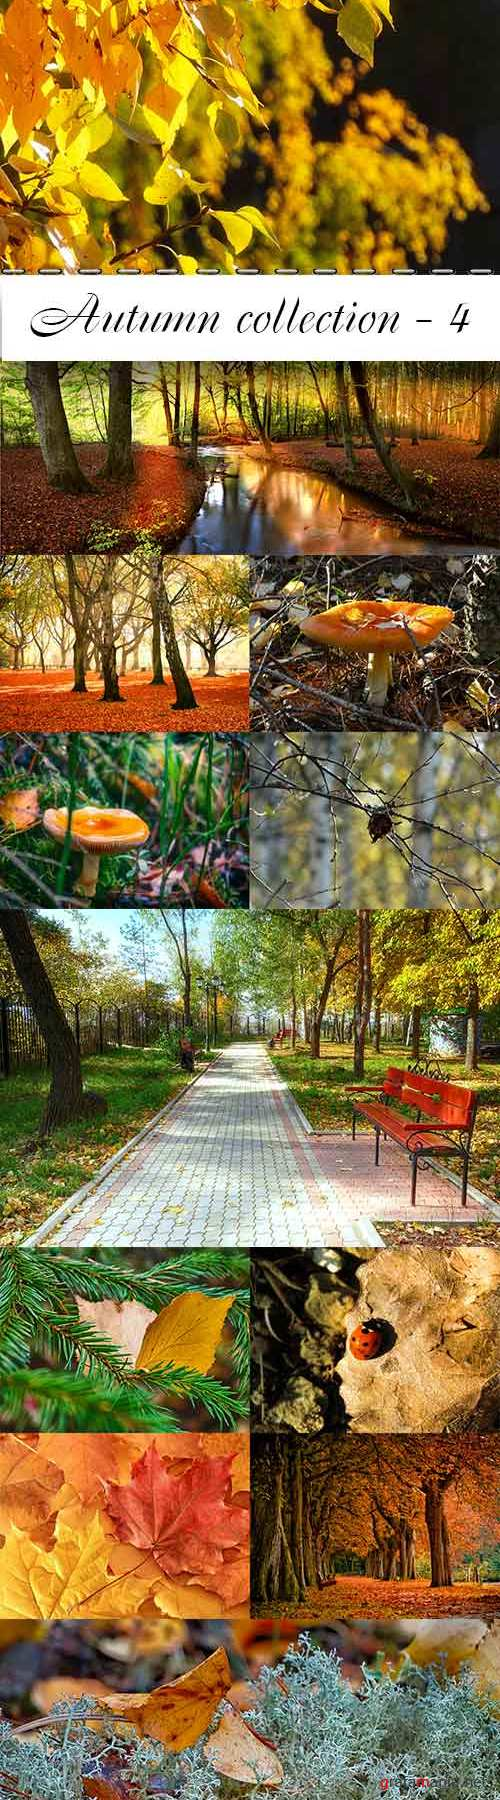 Autumn collection raster graphics - 4